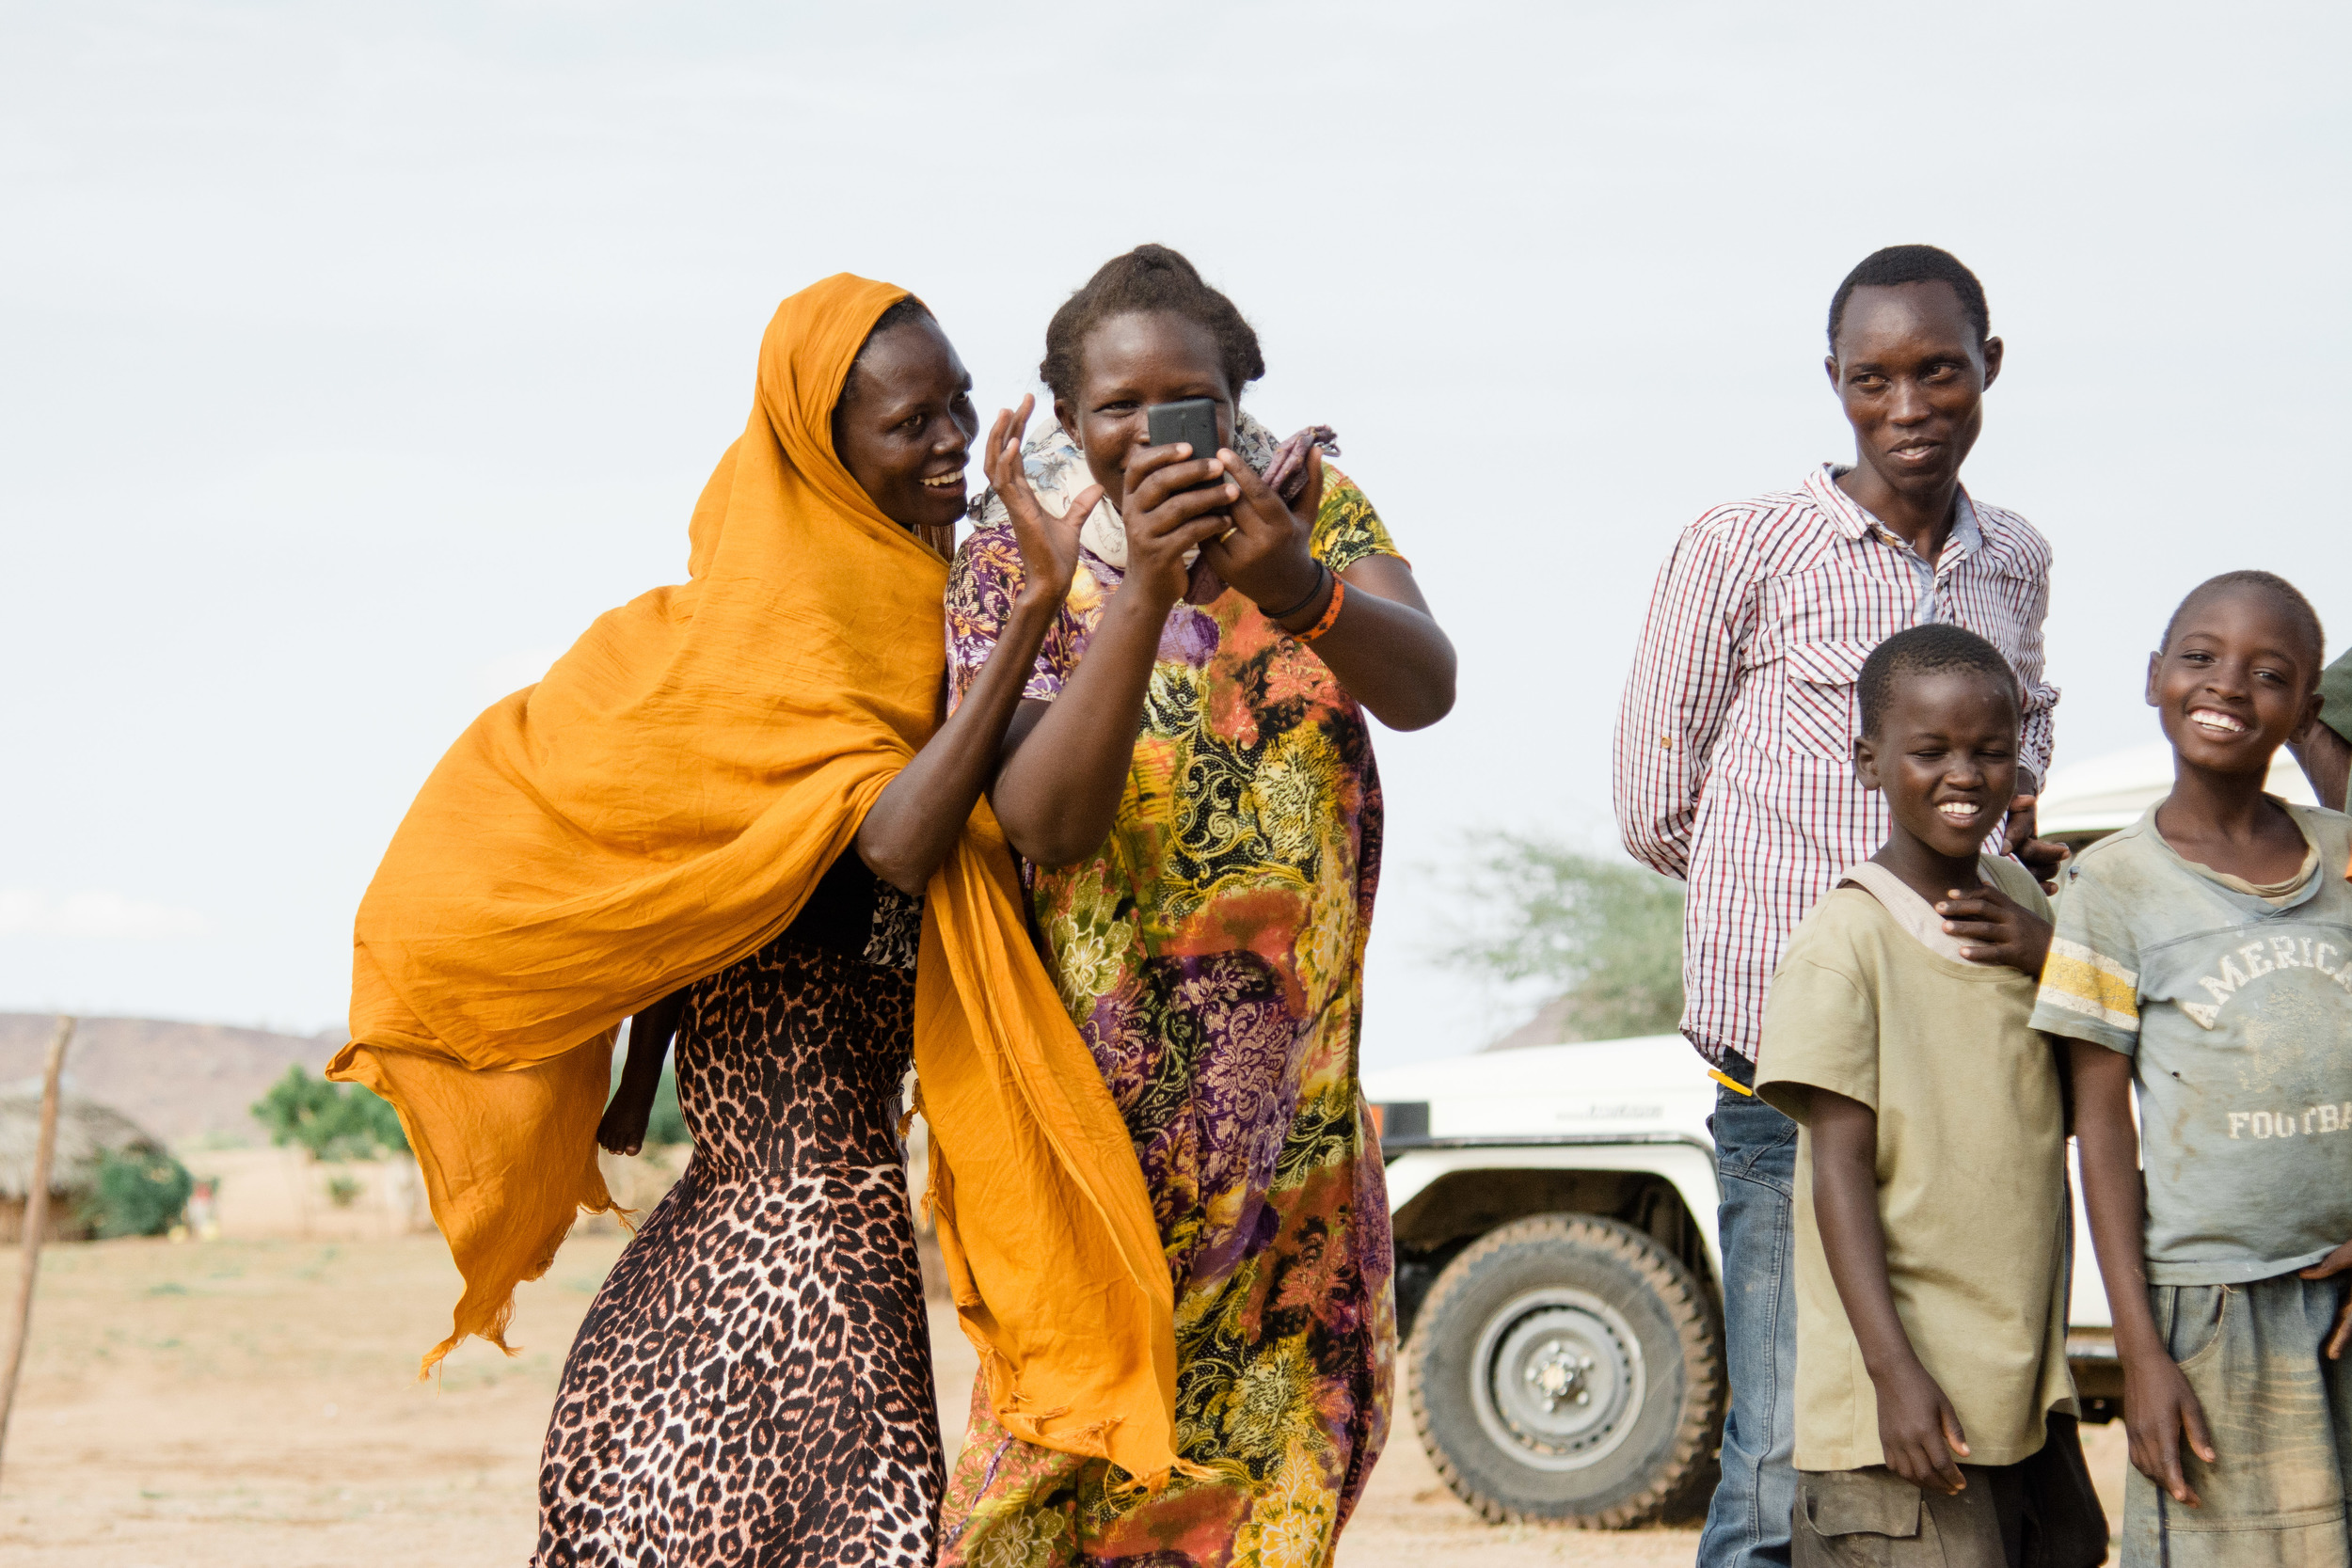 These women got a kick out of taking a picture of me while I was photographing them.